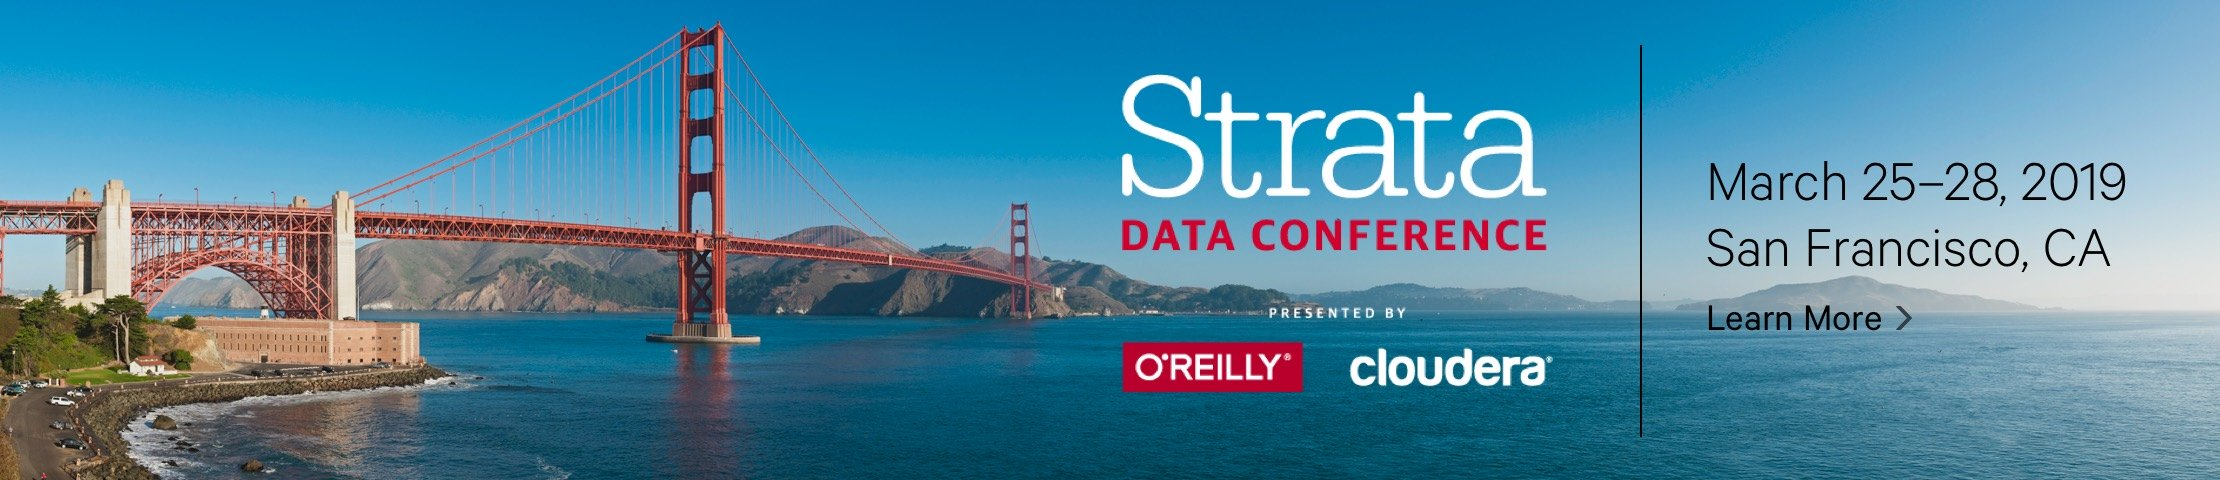 Strata Data Conference San Francisco